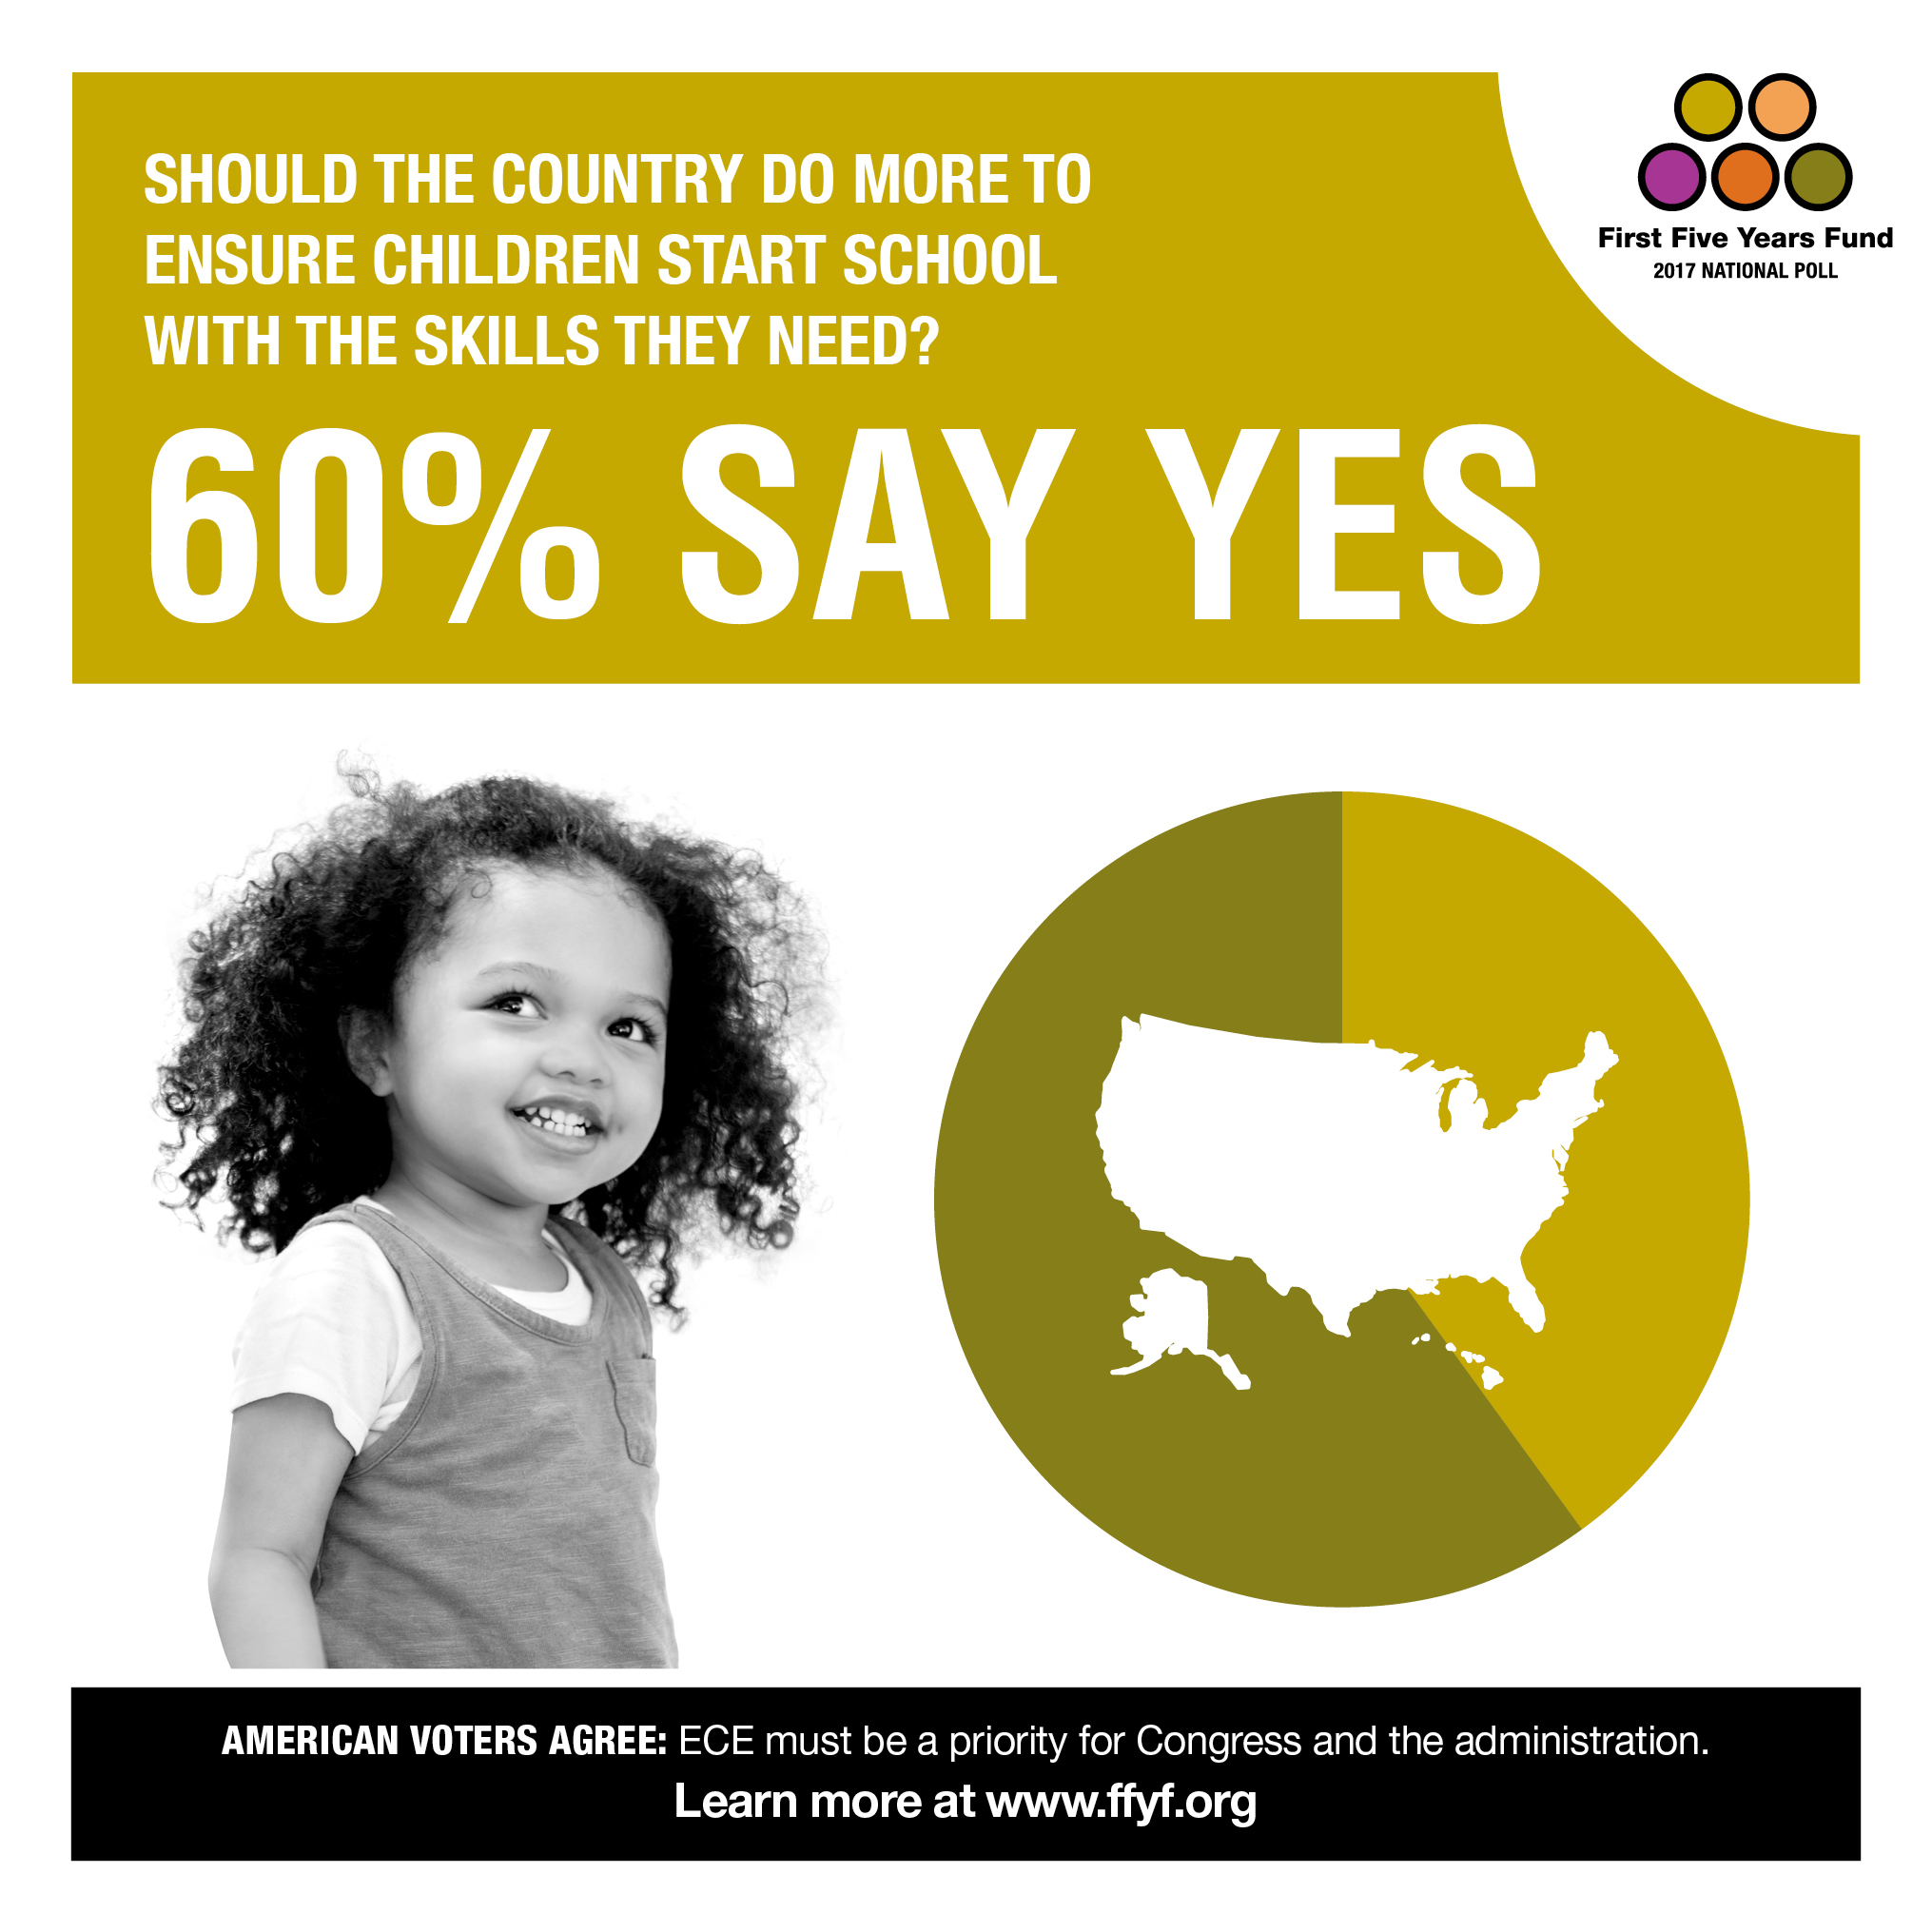 2017 National Poll: 60% of Voters Say We Should Do More to Prepare Children For School